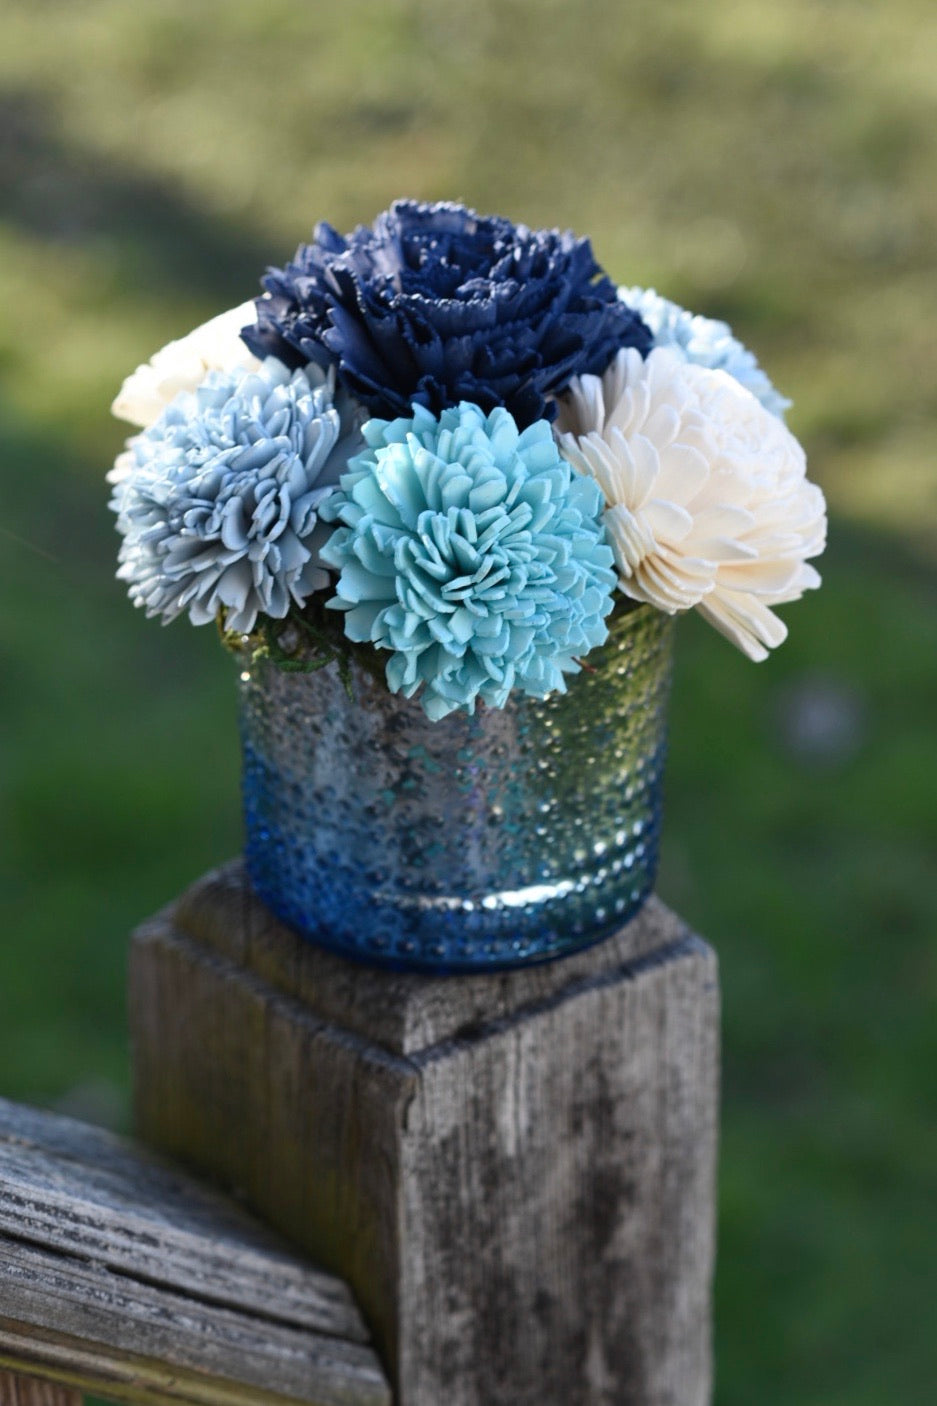 Blue/ Silver ombré arrangement